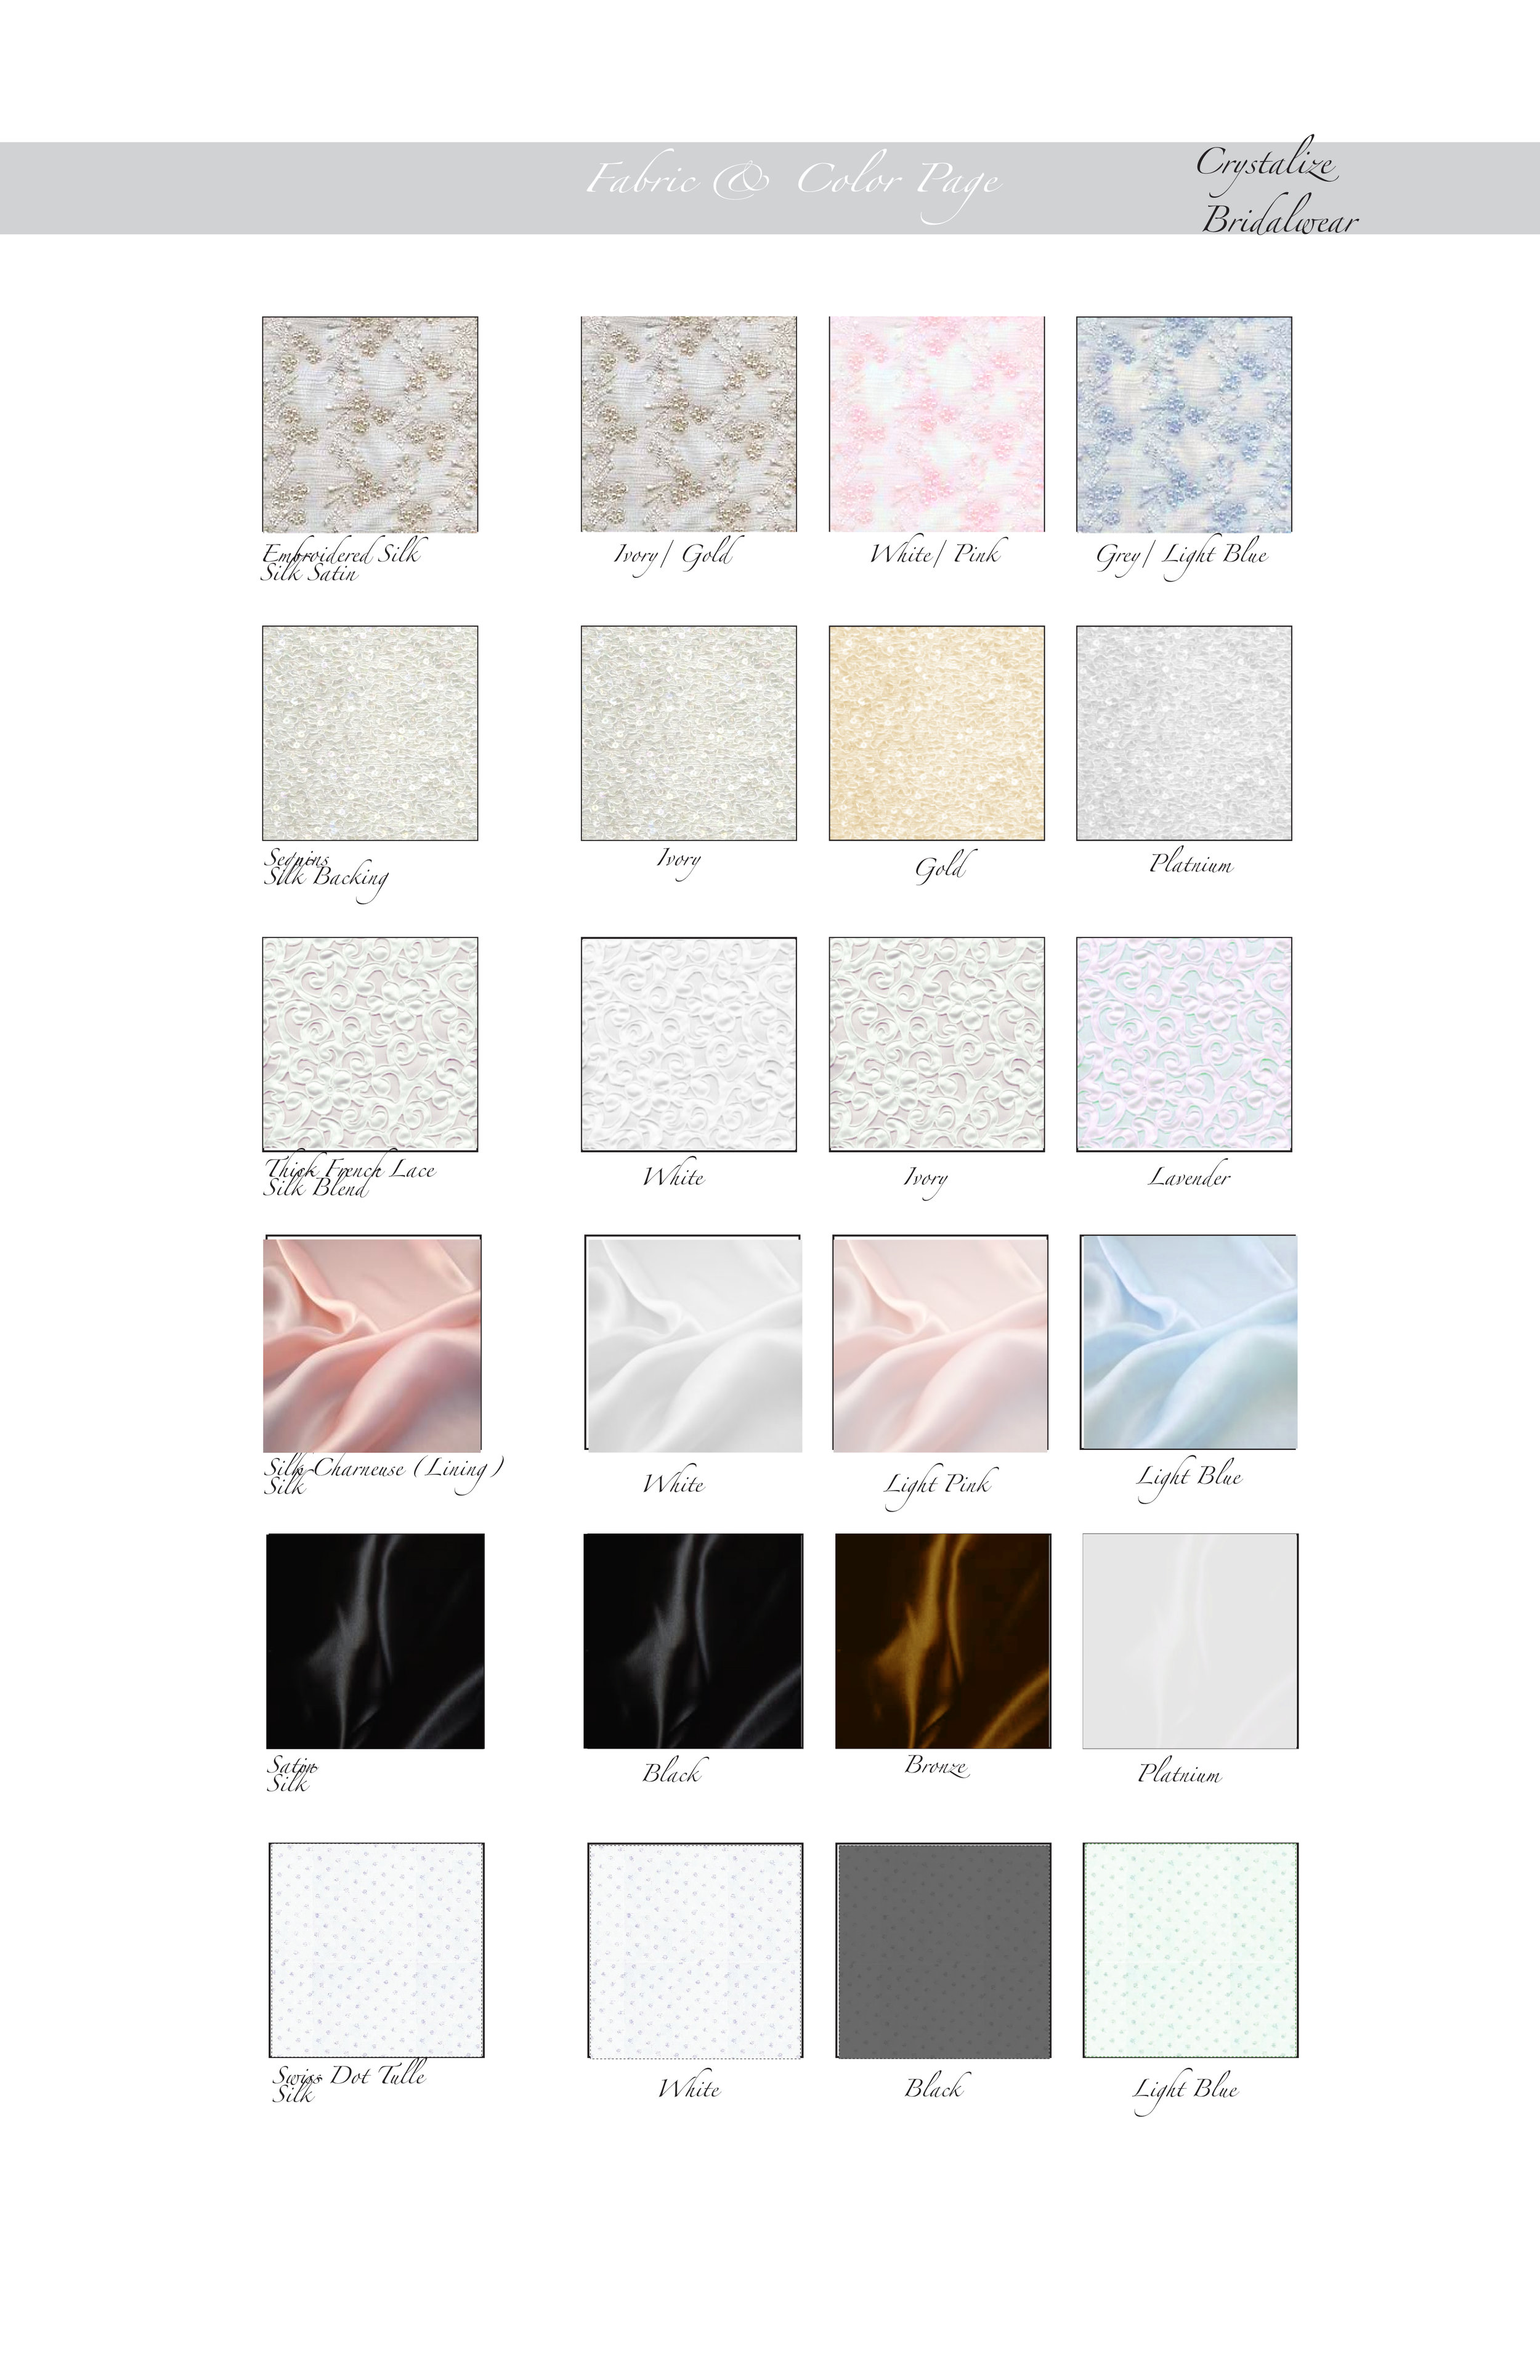 crystalize_Fabric and color page format.jpg